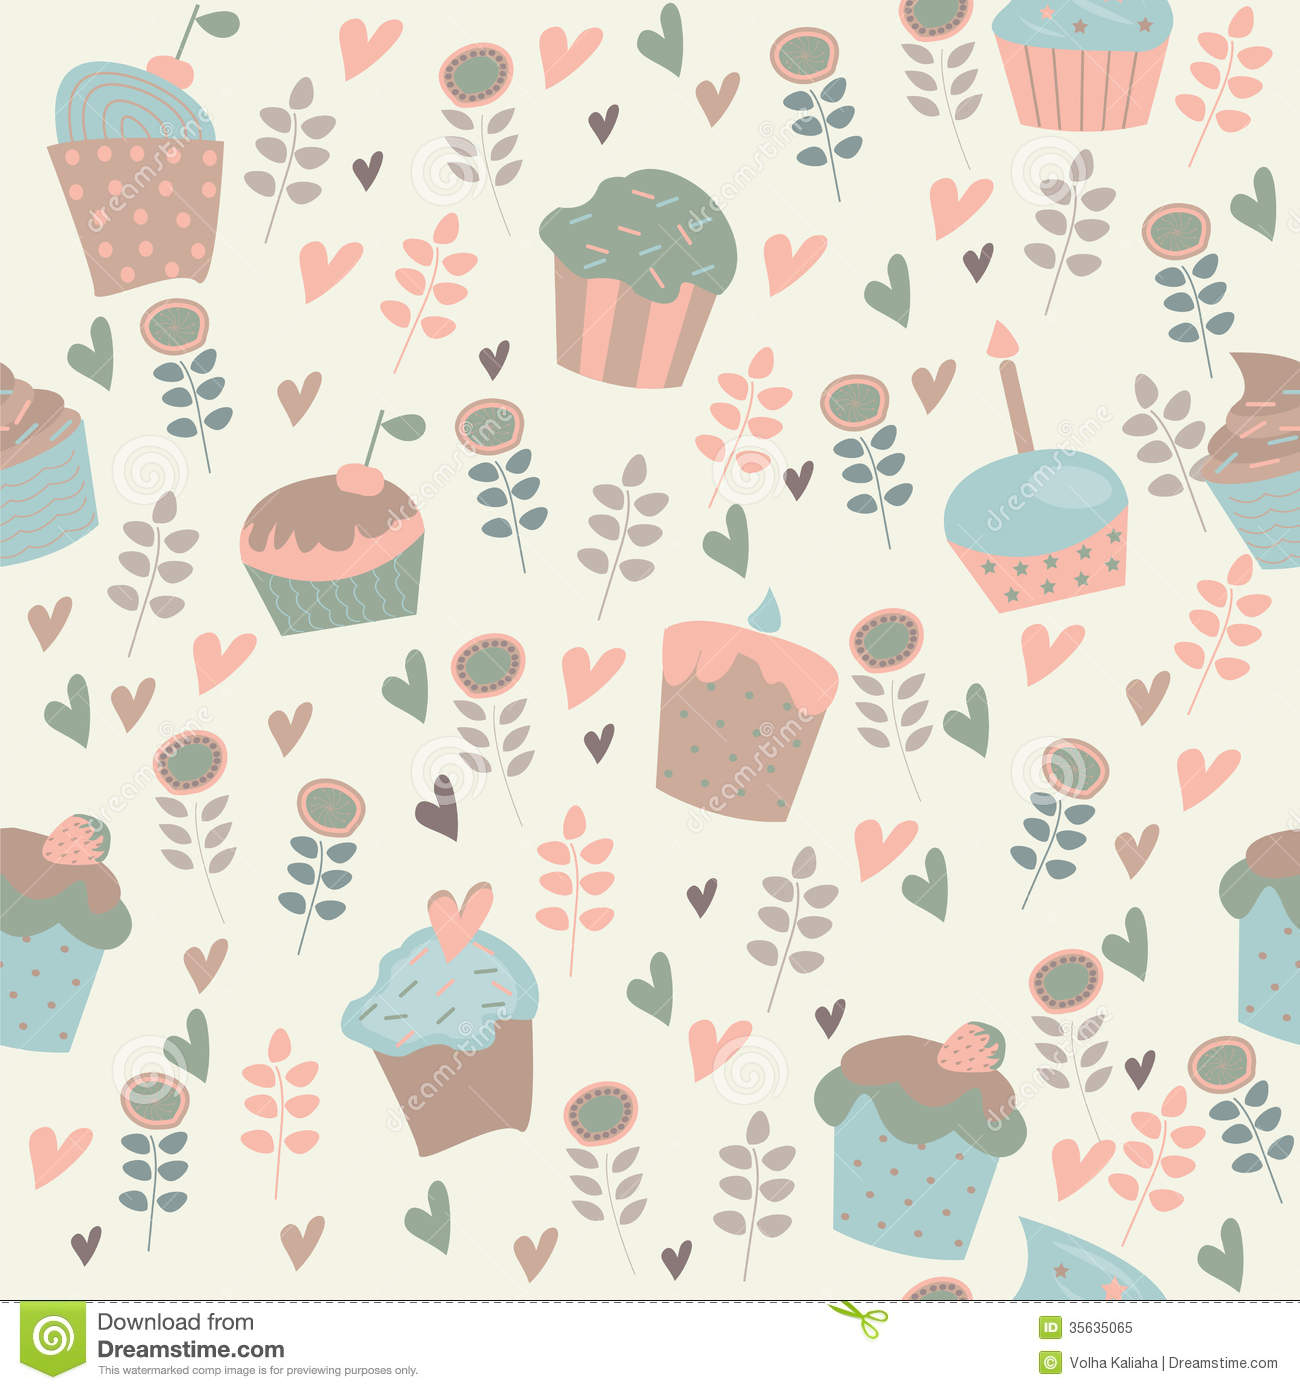 Fall Themed Iphone Wallpapers Cute Background With Cupcakes Royalty Free Stock Photo